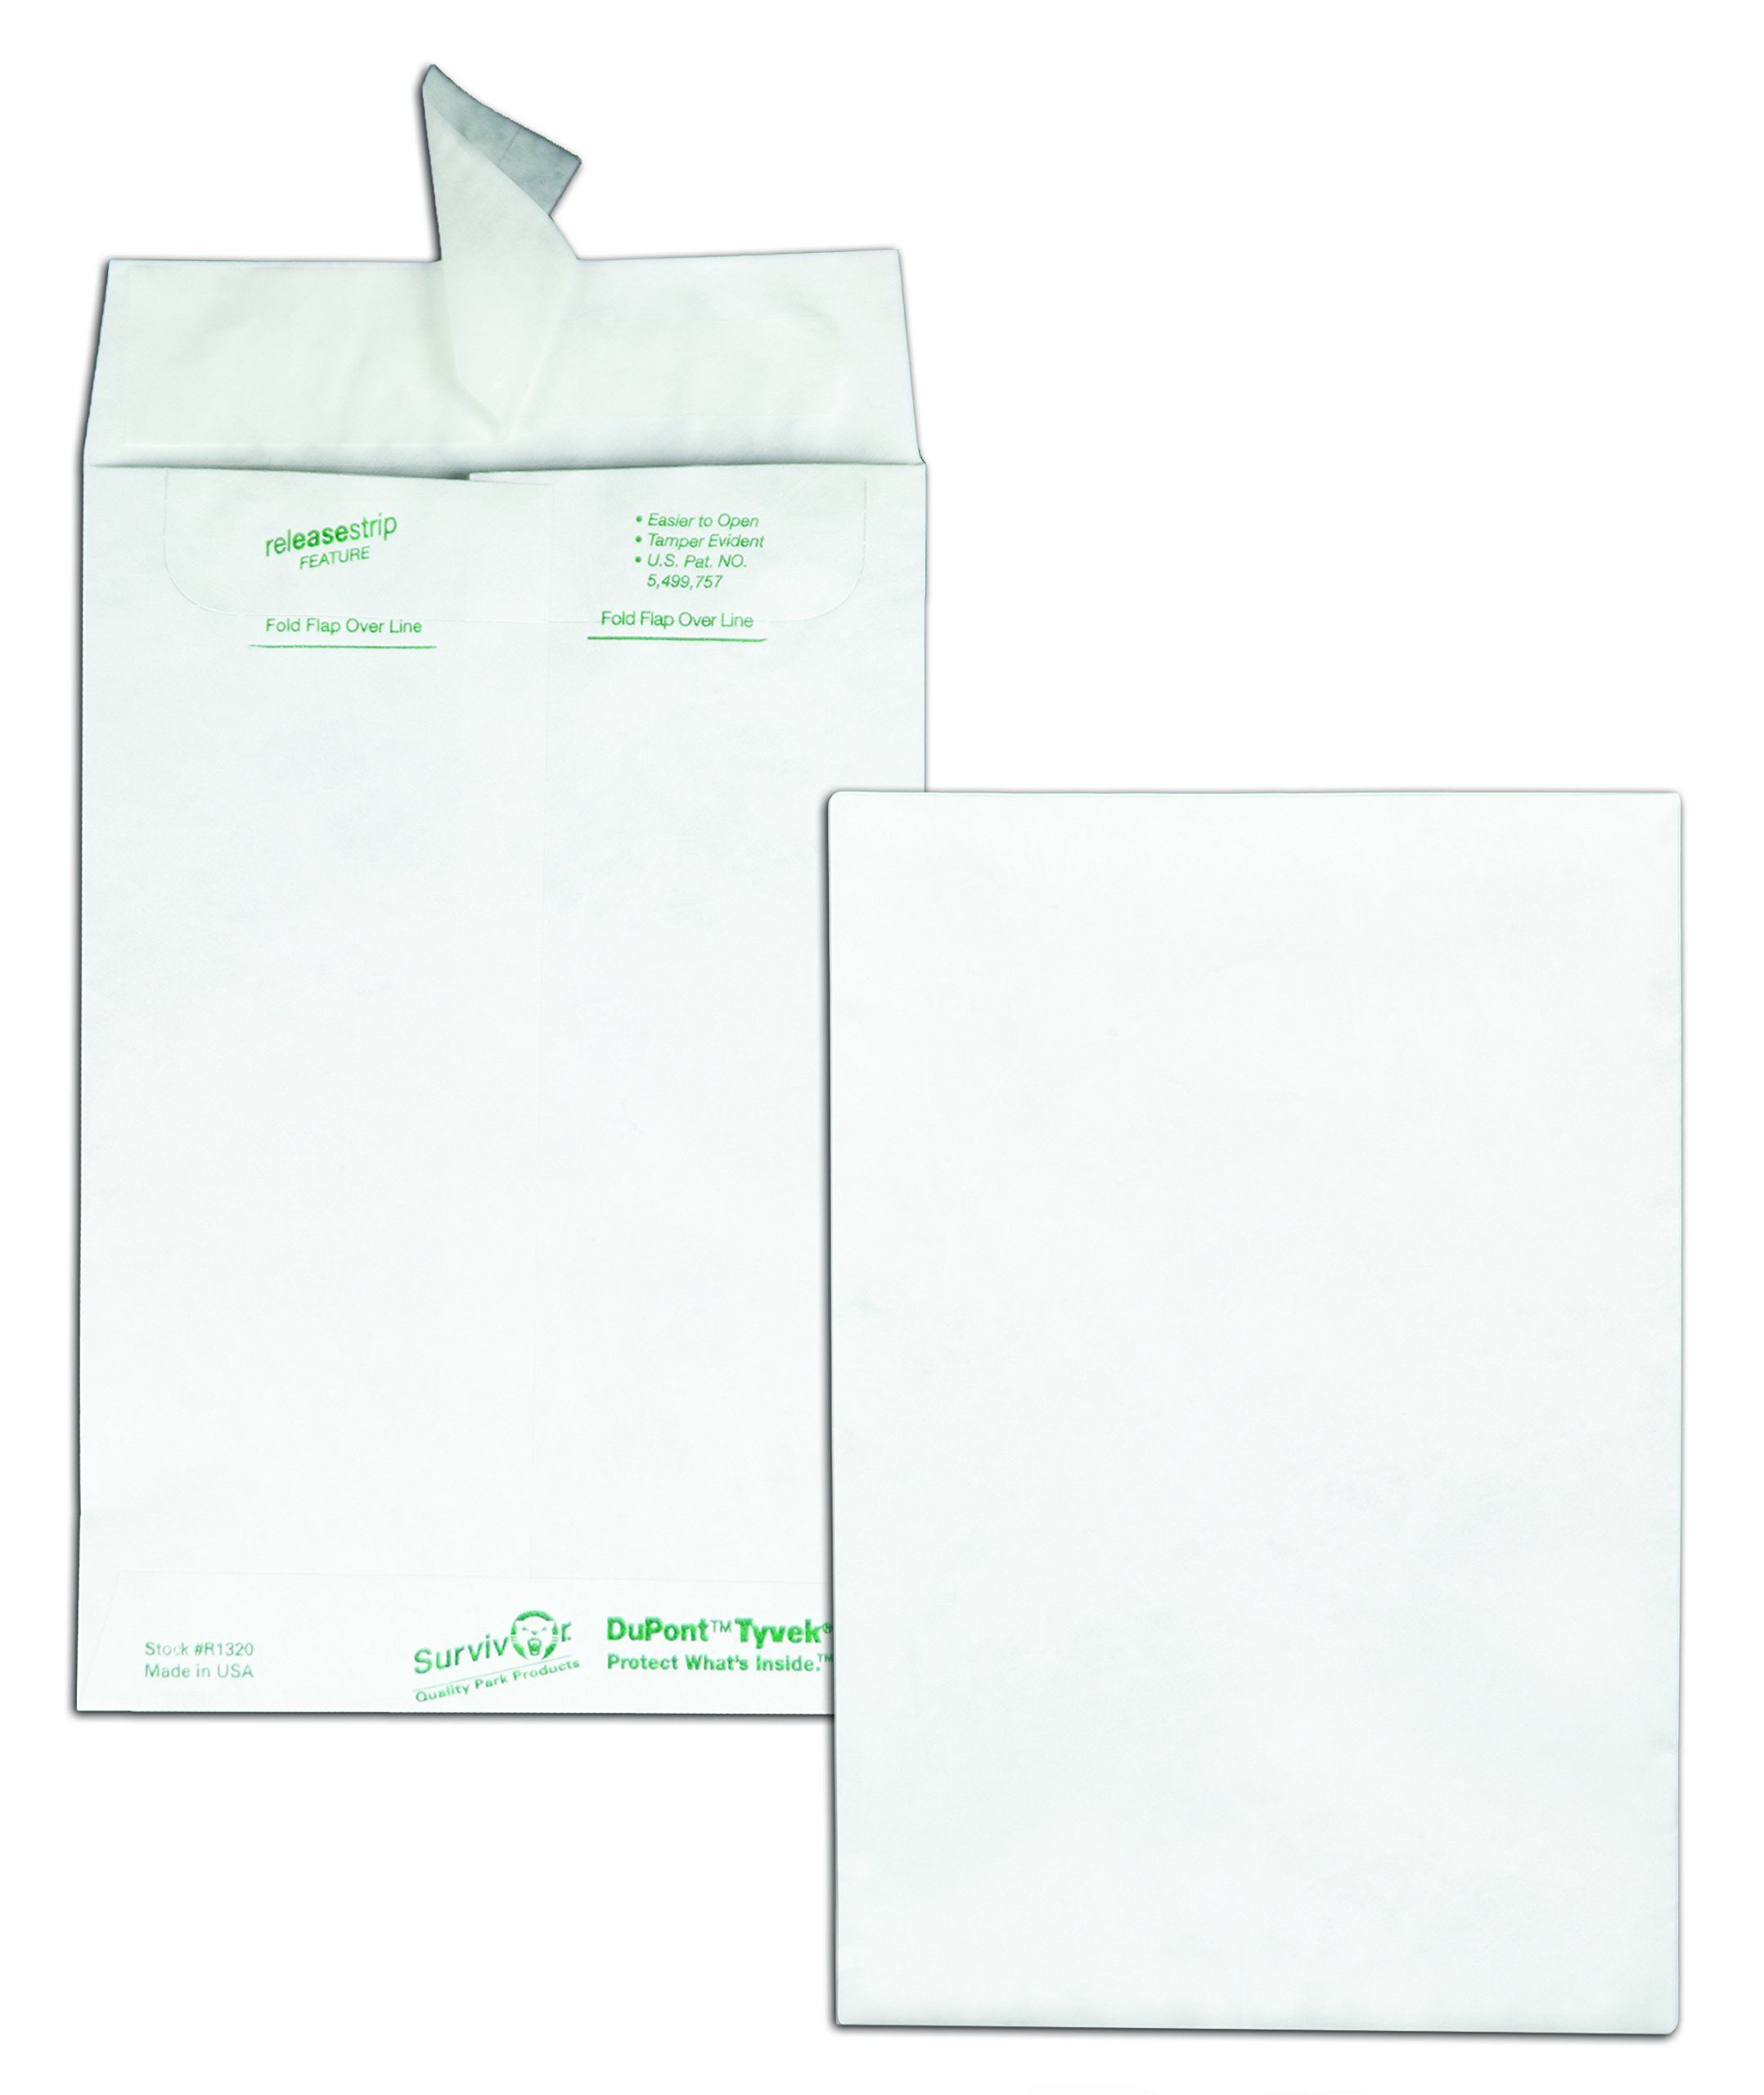 Quality Park tyvek Catalog Envelope, 6 inches x 9 inches, White 100 Envelopes (R1320) by Quality Park